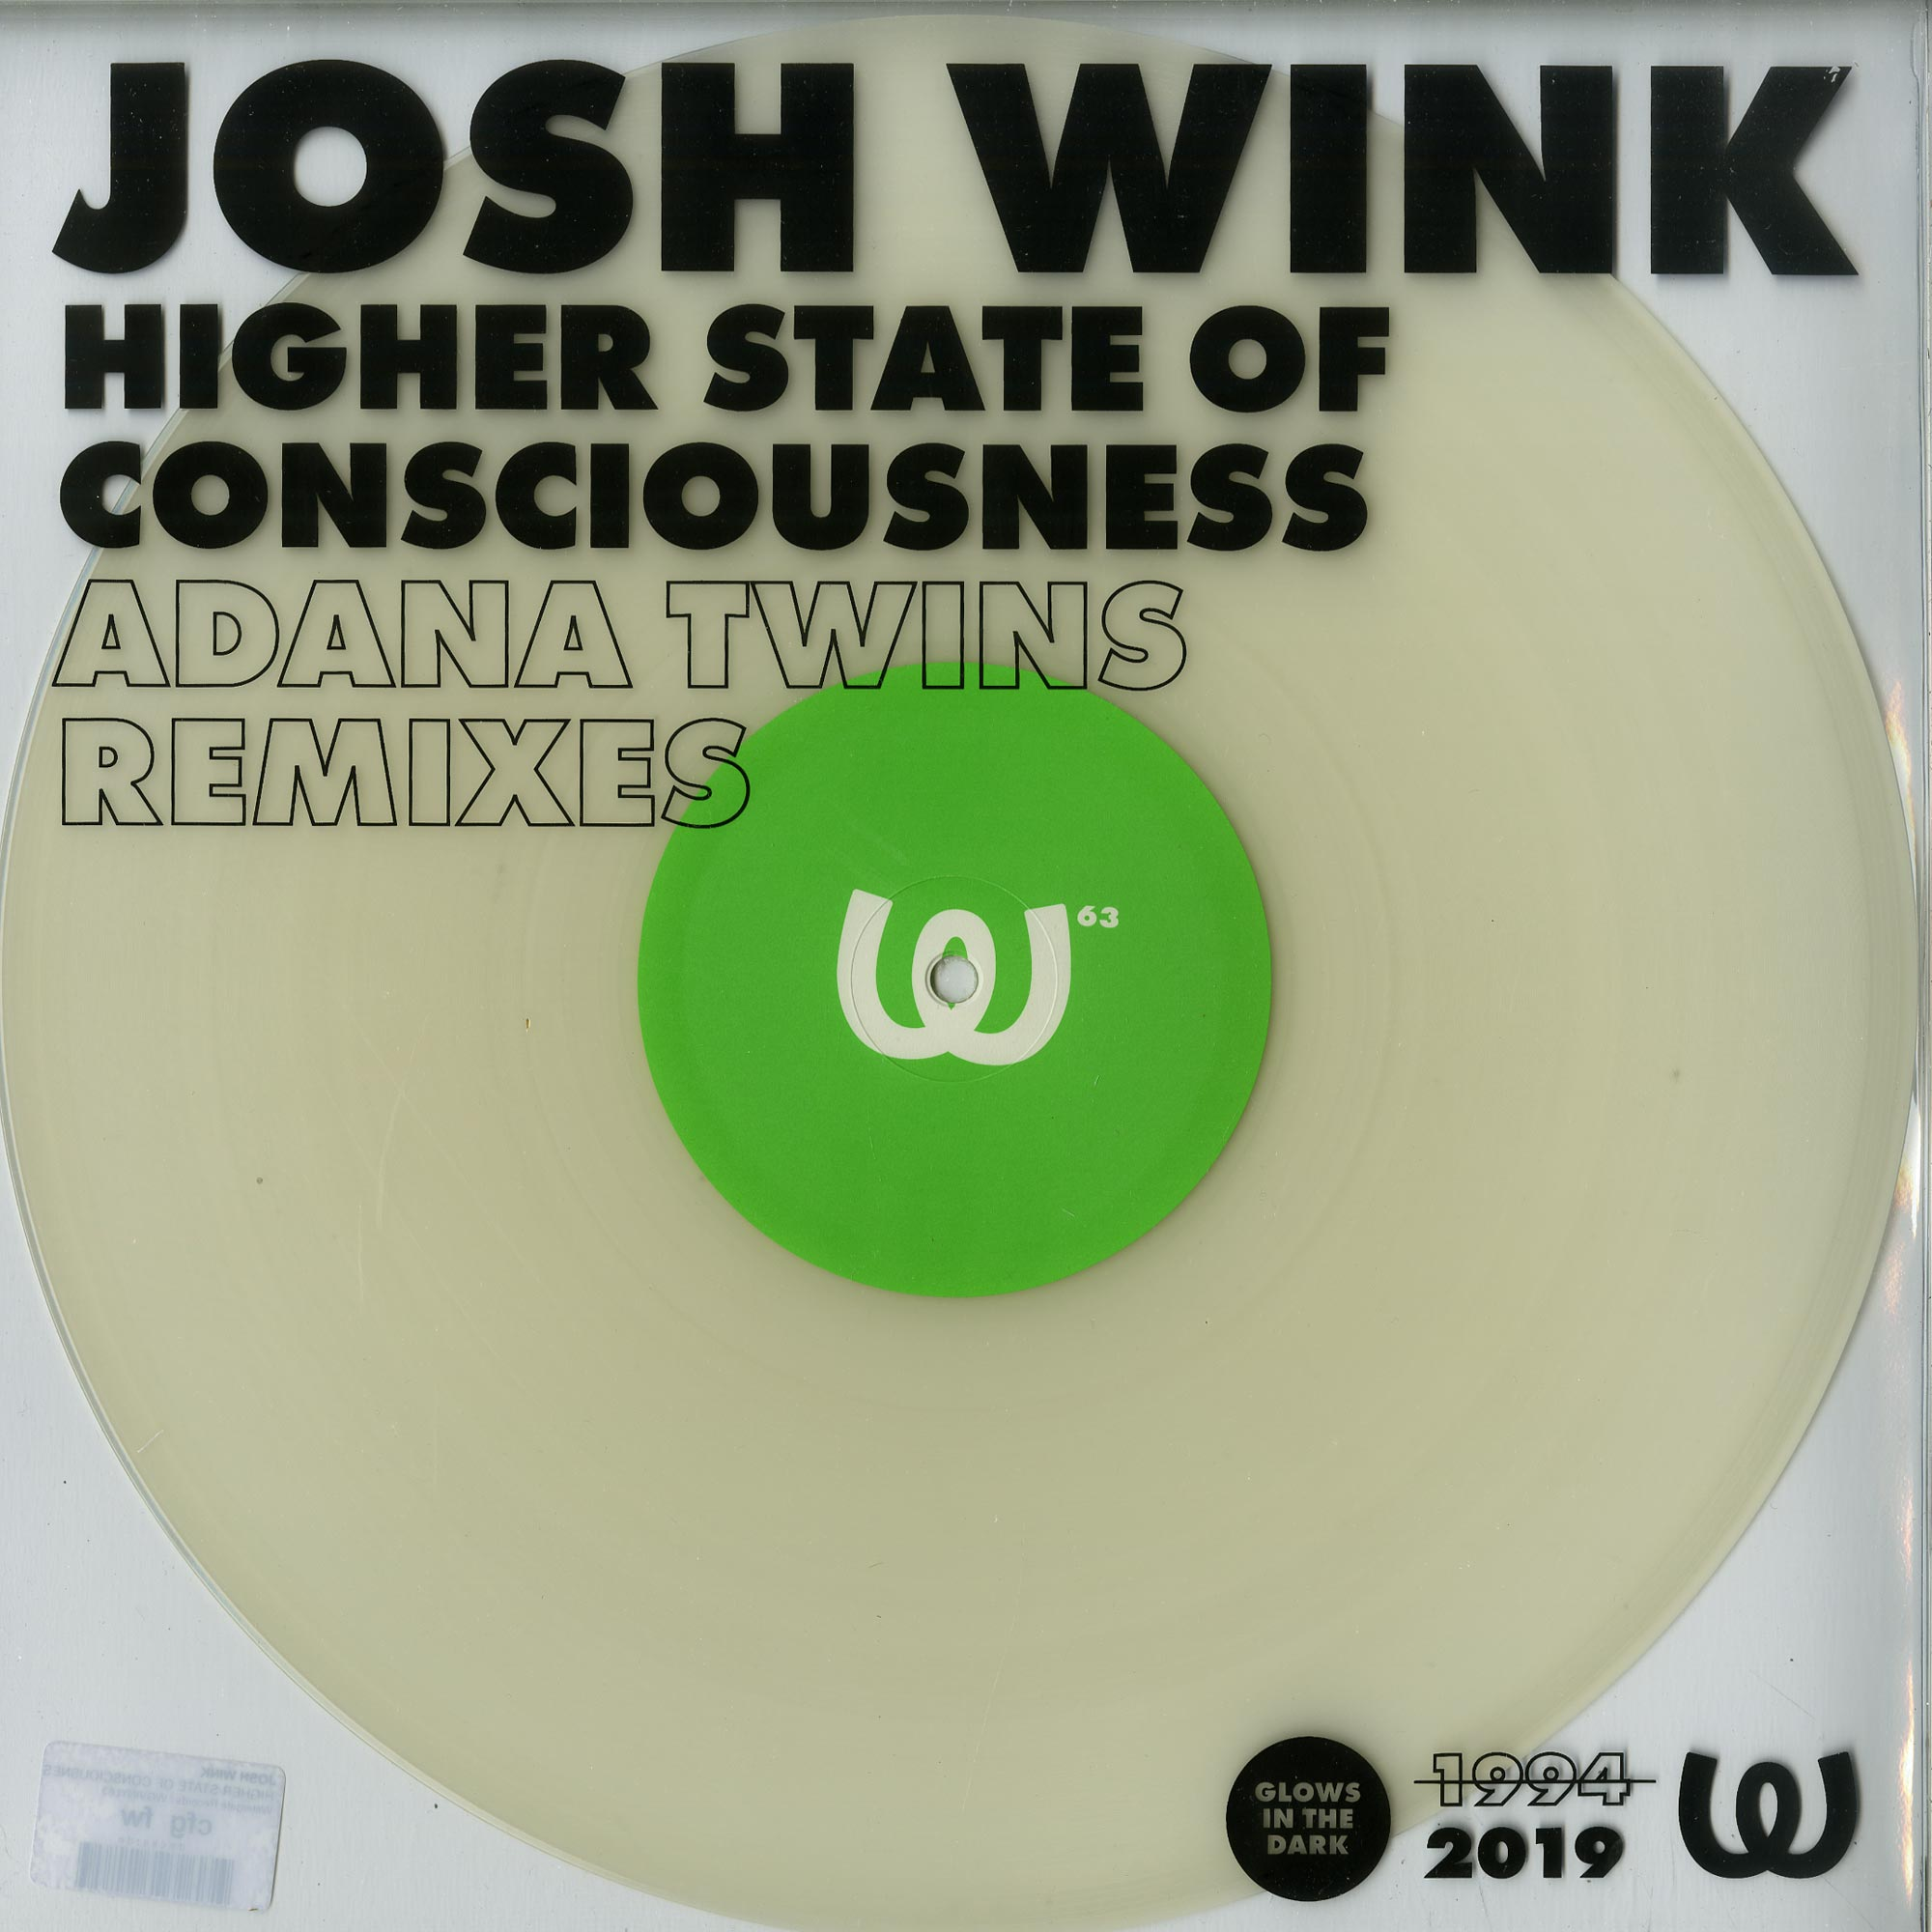 Josh Wink - HIGHER STATE OF CONSCIOUSNESS